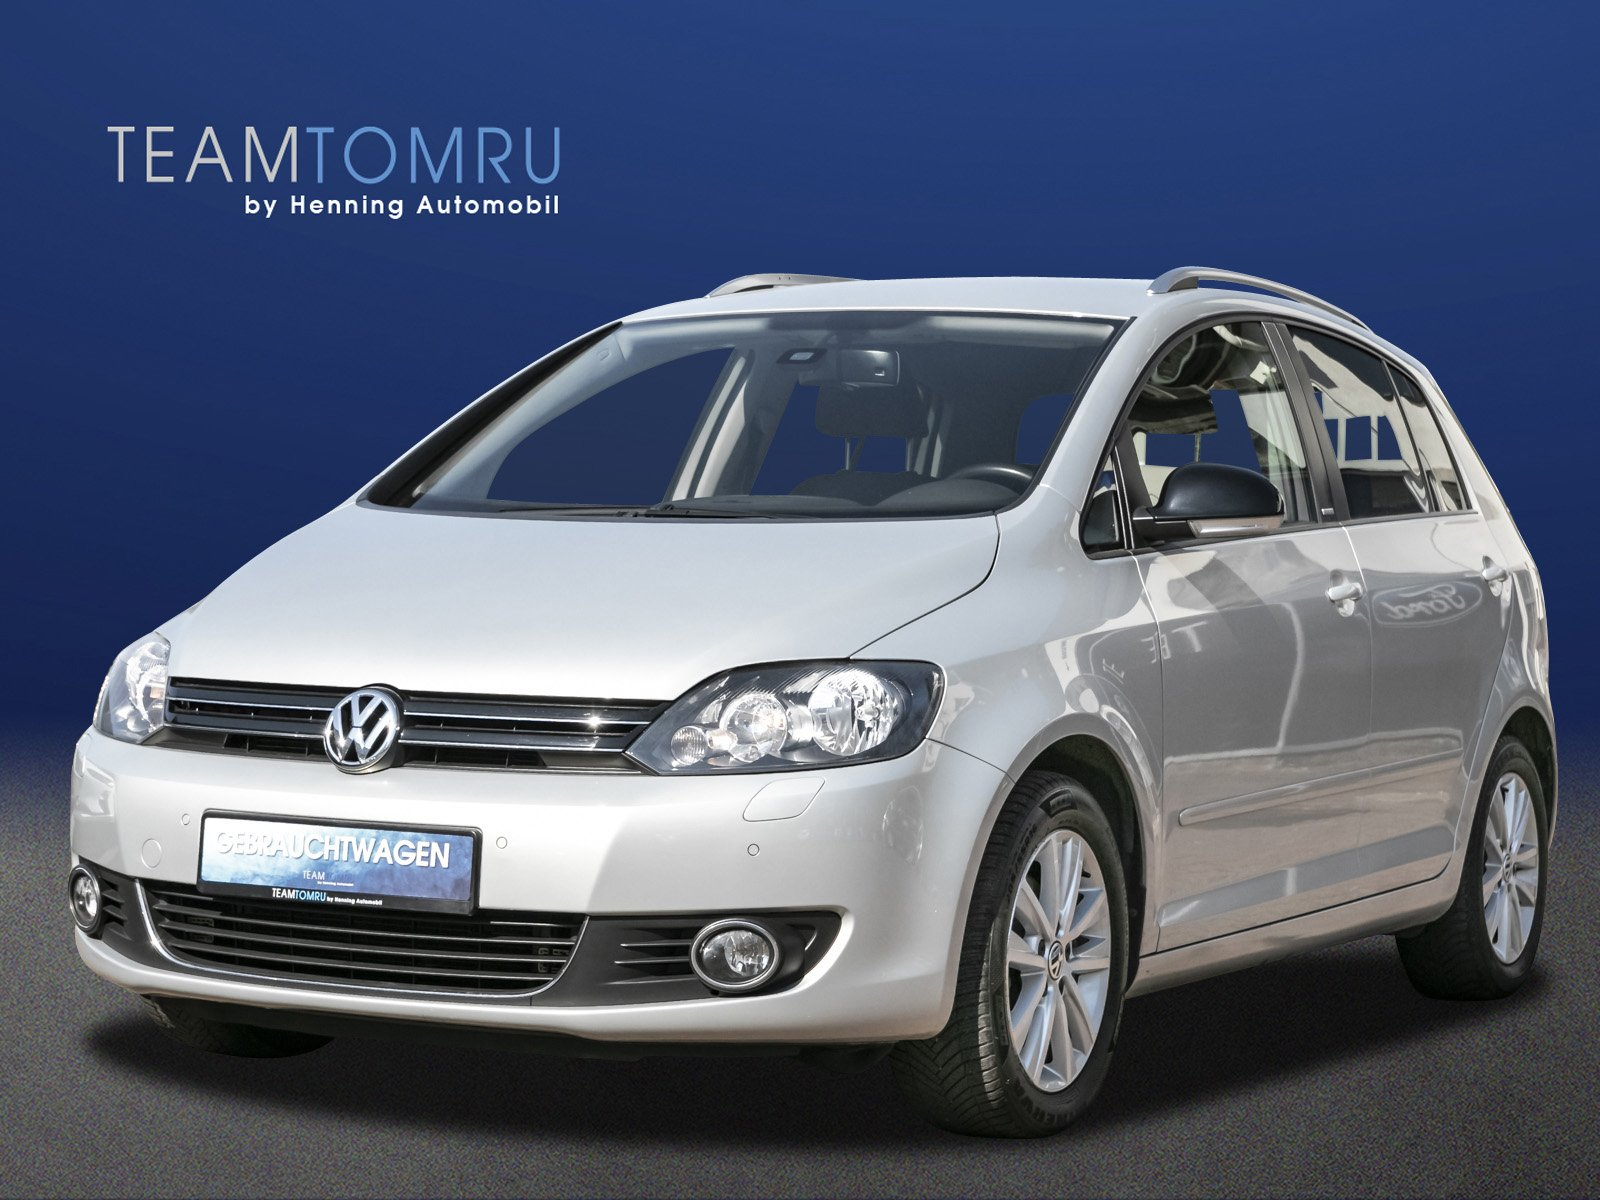 VW Golf VI Plus 1.2 TSI